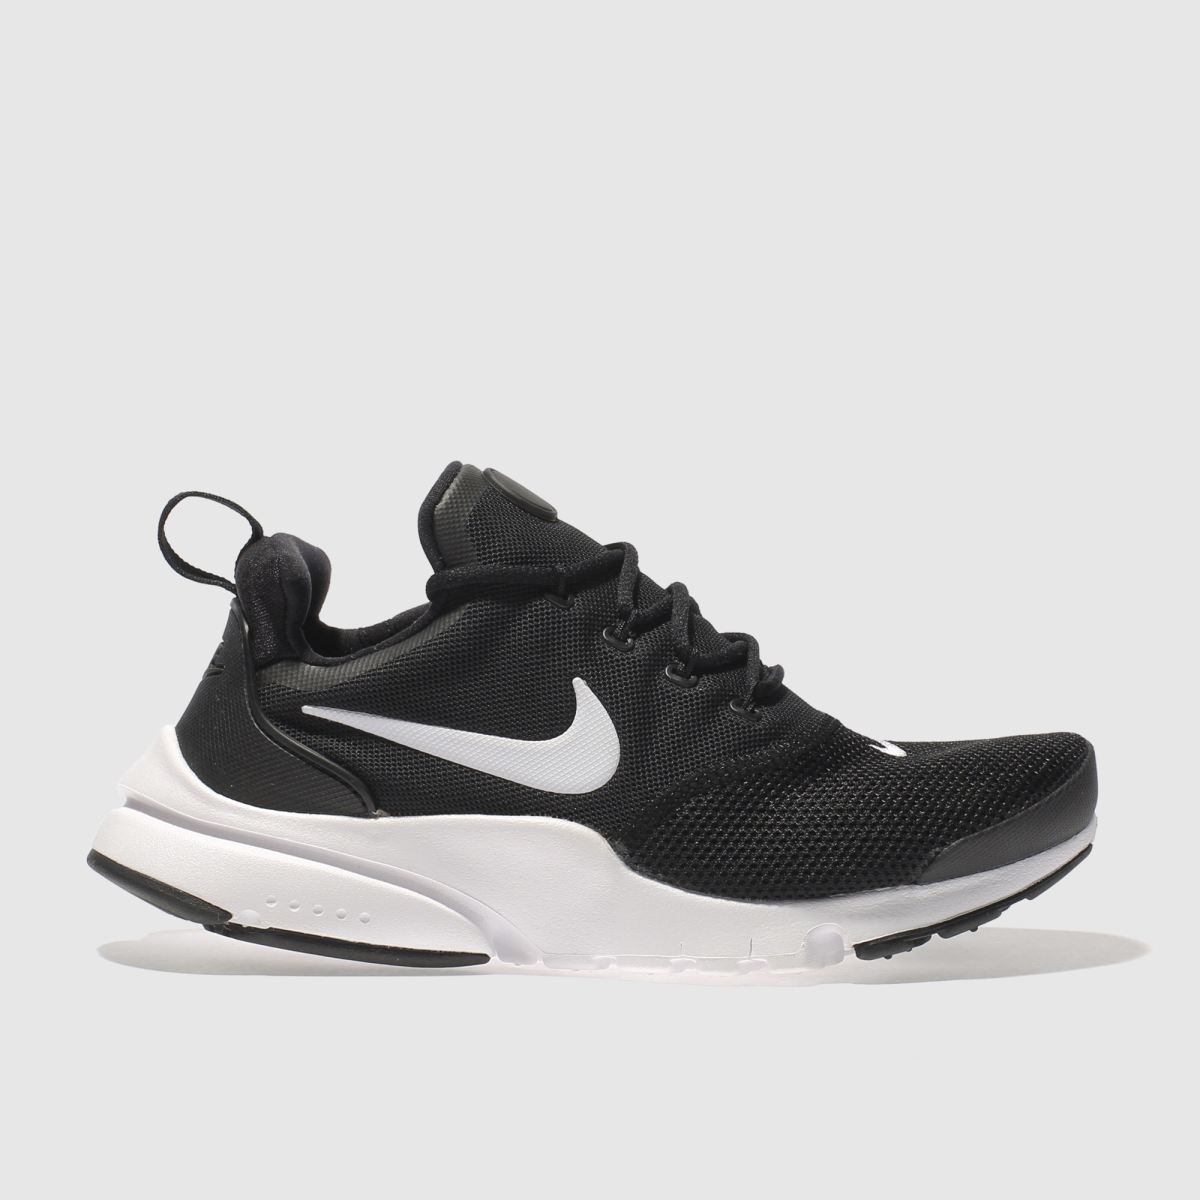 Nike Black & White Presto Fly Unisex Youth Youth